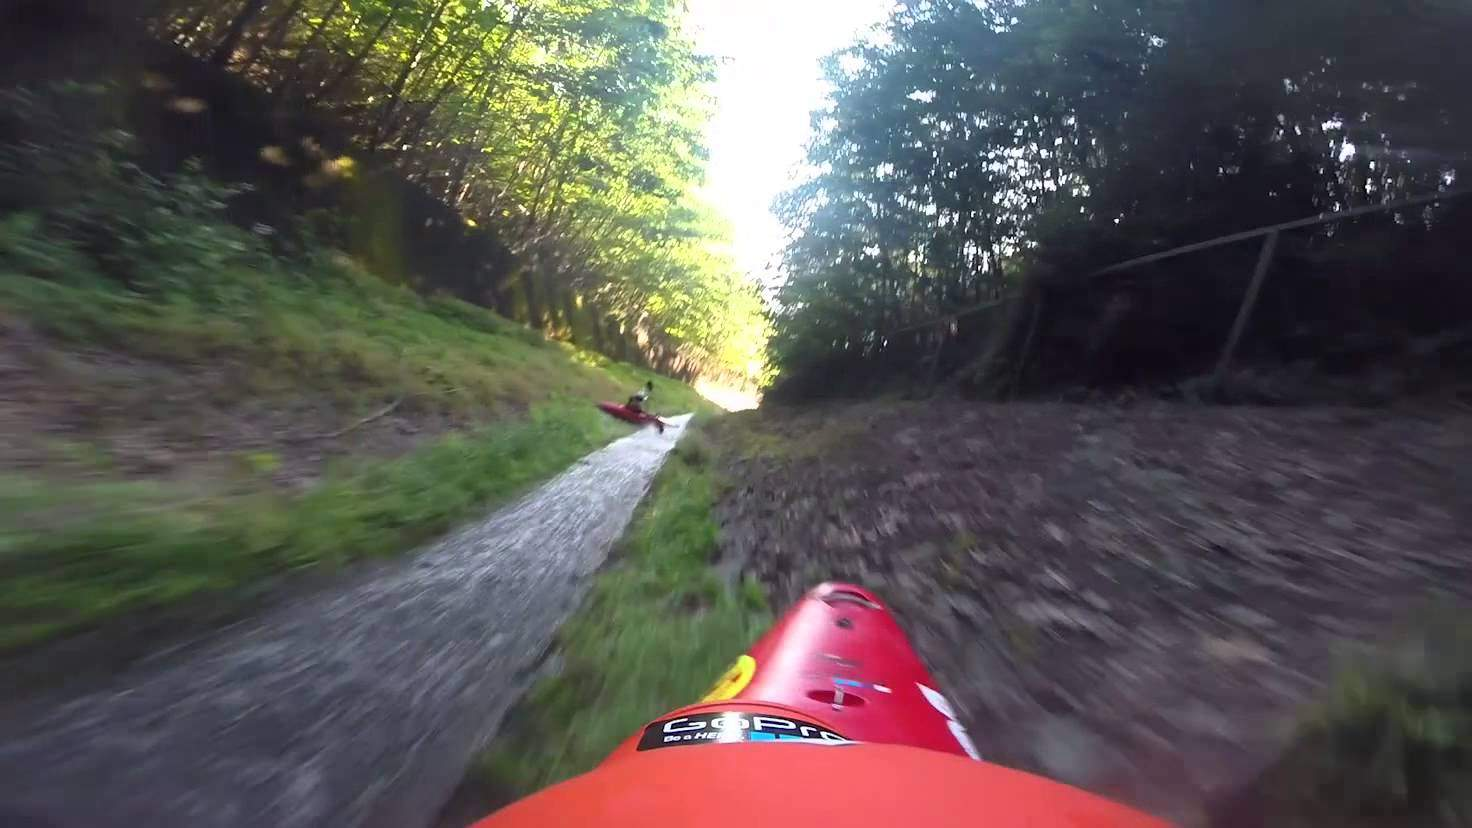 Watch Two Men Hit 45 MPH in Nothing but Kayaks and a Few Inches of Water